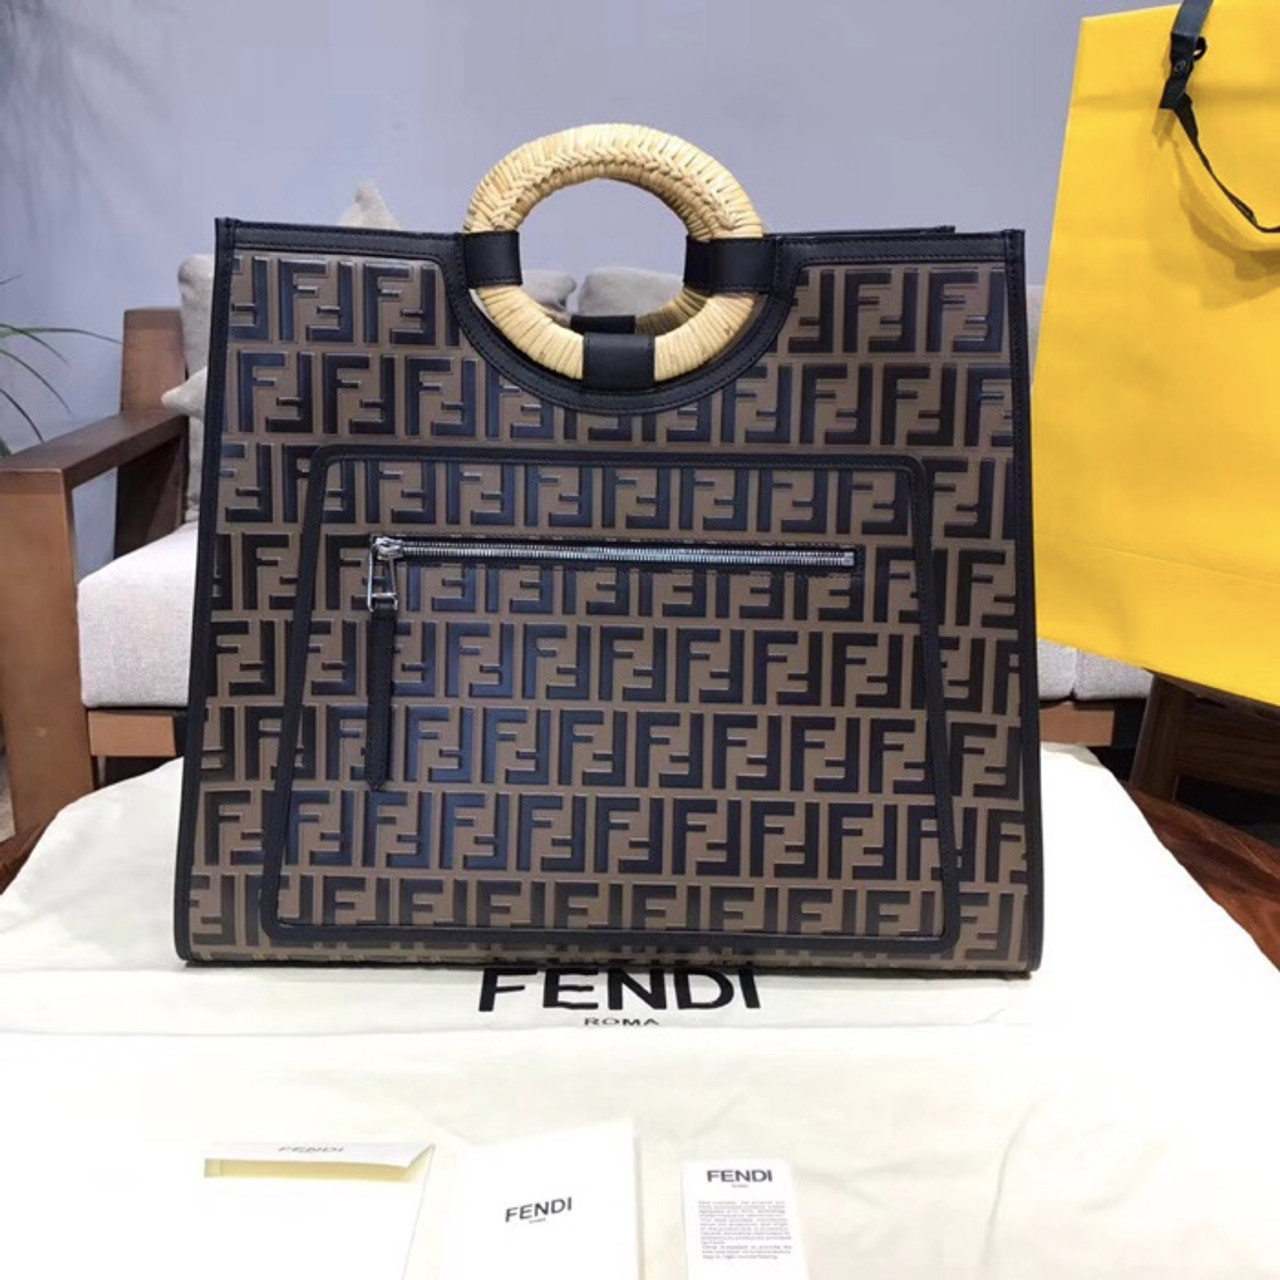 b545db6b0 Fendi FF Embossed Logo Runaway Shopper Bag Calfskin Leather 45cm  Spring/Summer 2018 Collection,